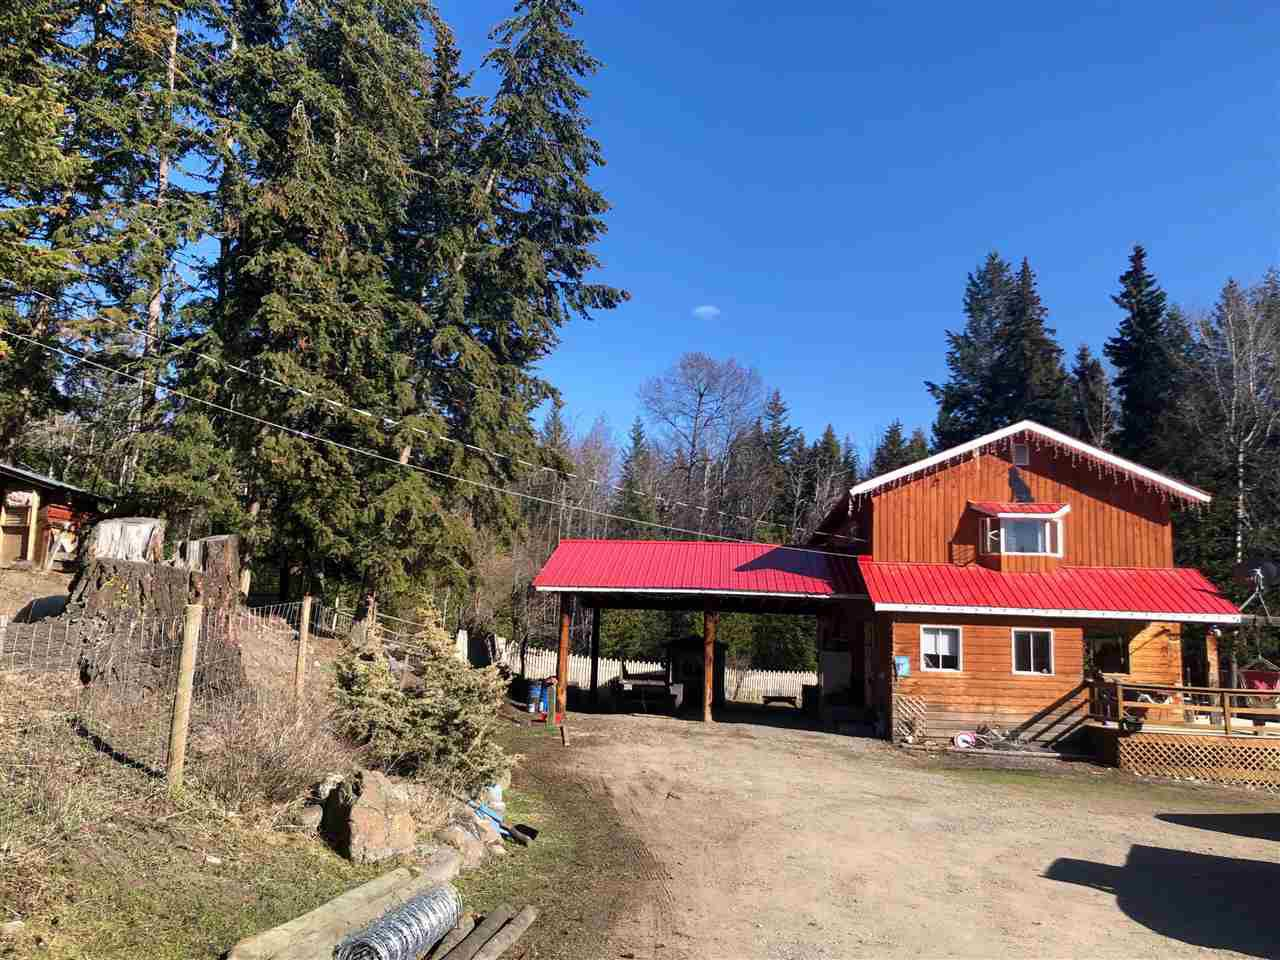 Main Photo: 3750 PARADISE Drive in Williams Lake: Williams Lake - Rural East House for sale (Williams Lake (Zone 27))  : MLS®# R2350243